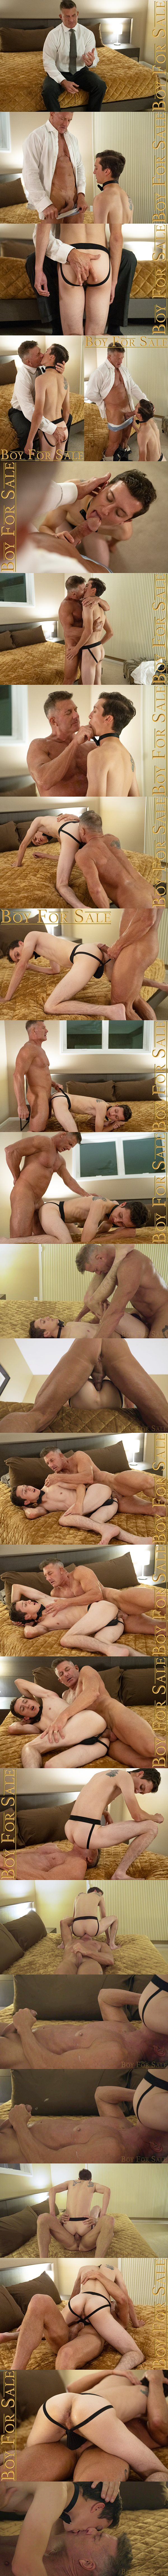 Boyforsale - hot daddy Matthew Figata barebacks twink bottom Jack Andram in this older younger scene before Matthew blows his load in Chapter 2 The Prize 02